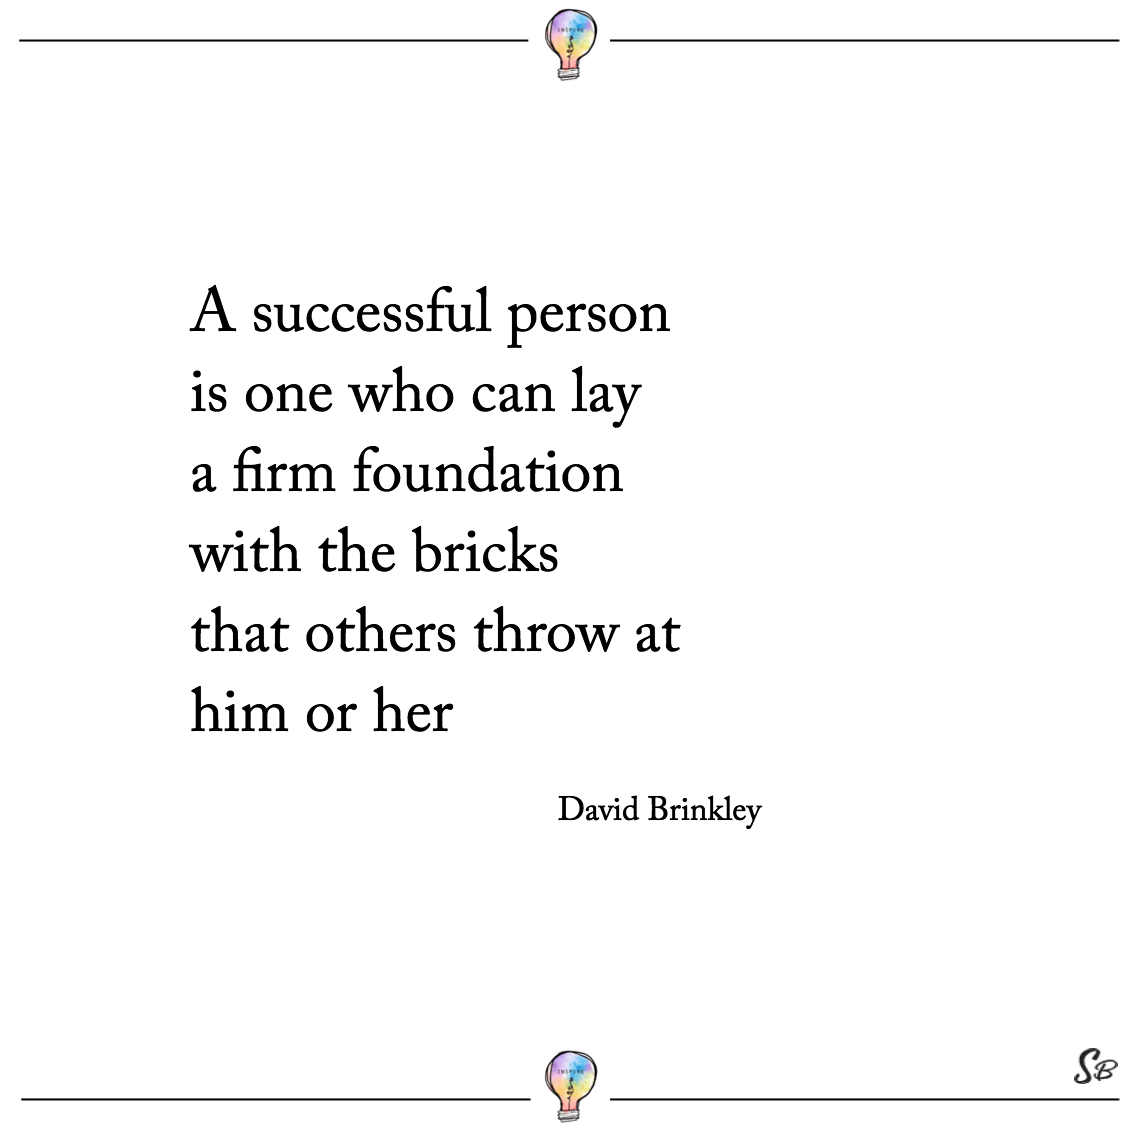 A successful person is one who can lay a firm foundation with the bricks that others throw at him or her david brinkley